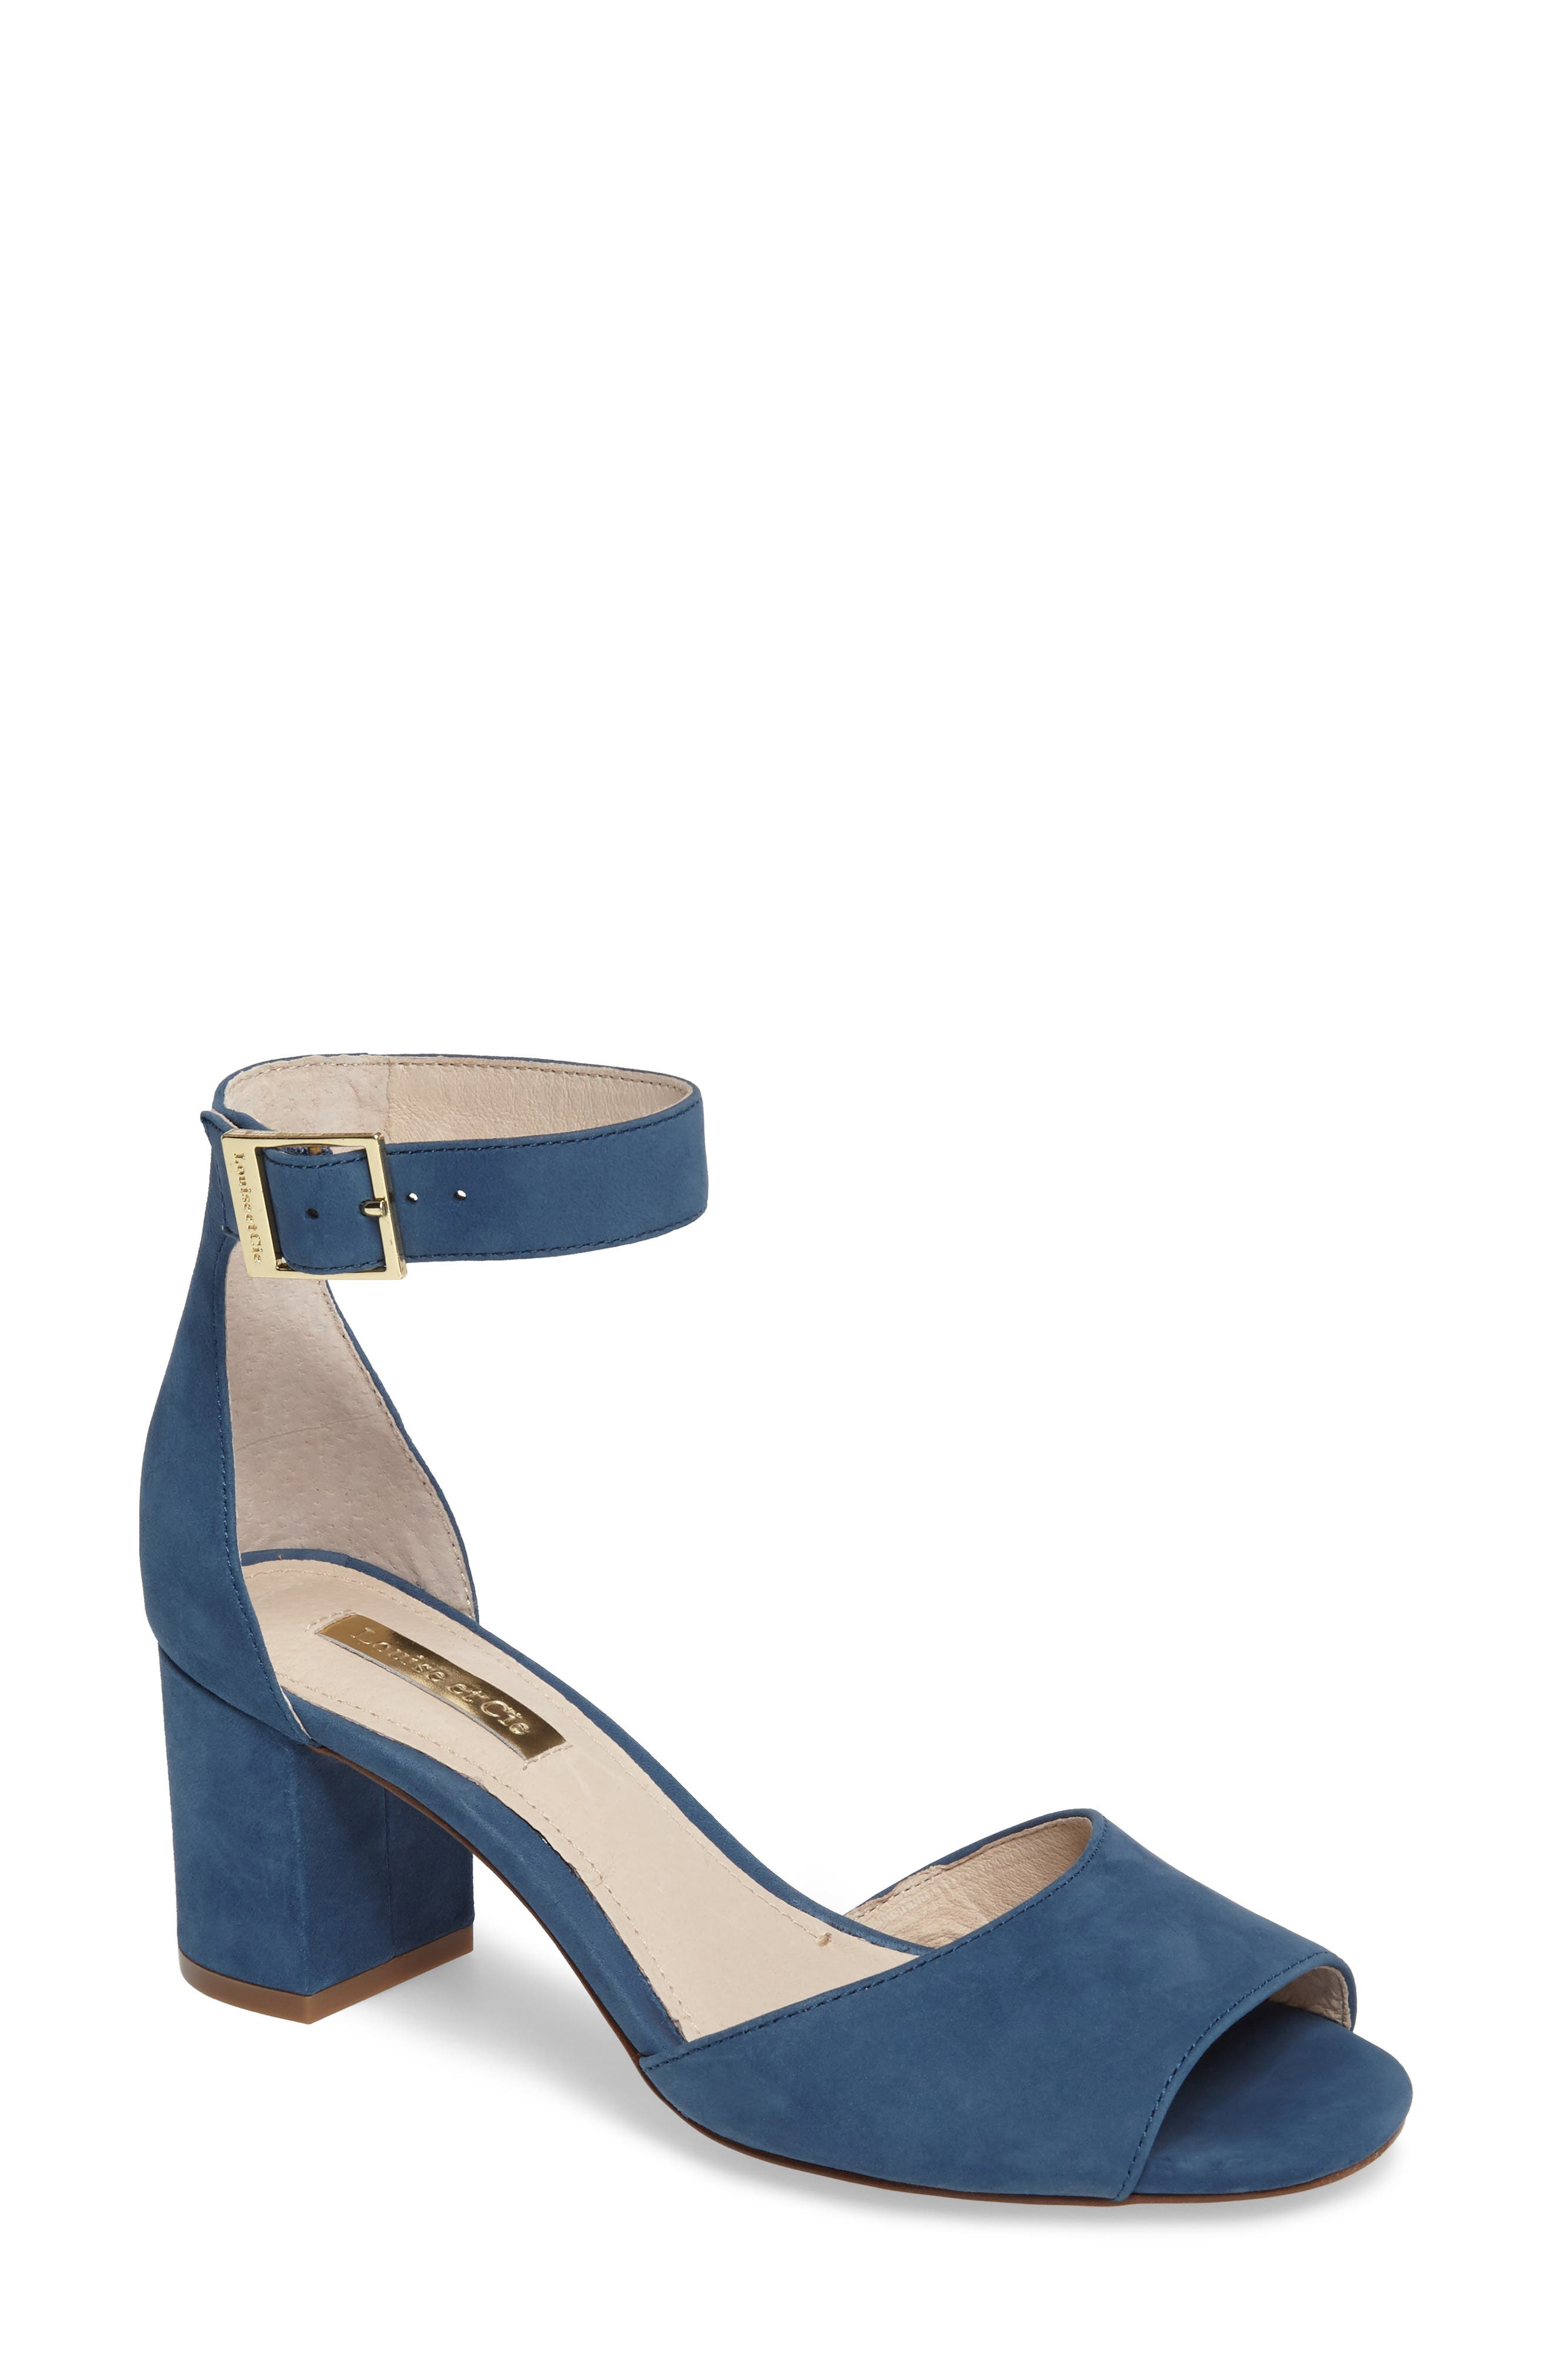 Alternate Image 1 Selected - Louise et Cie Karisa Ankle Cuff Sandal (Women)